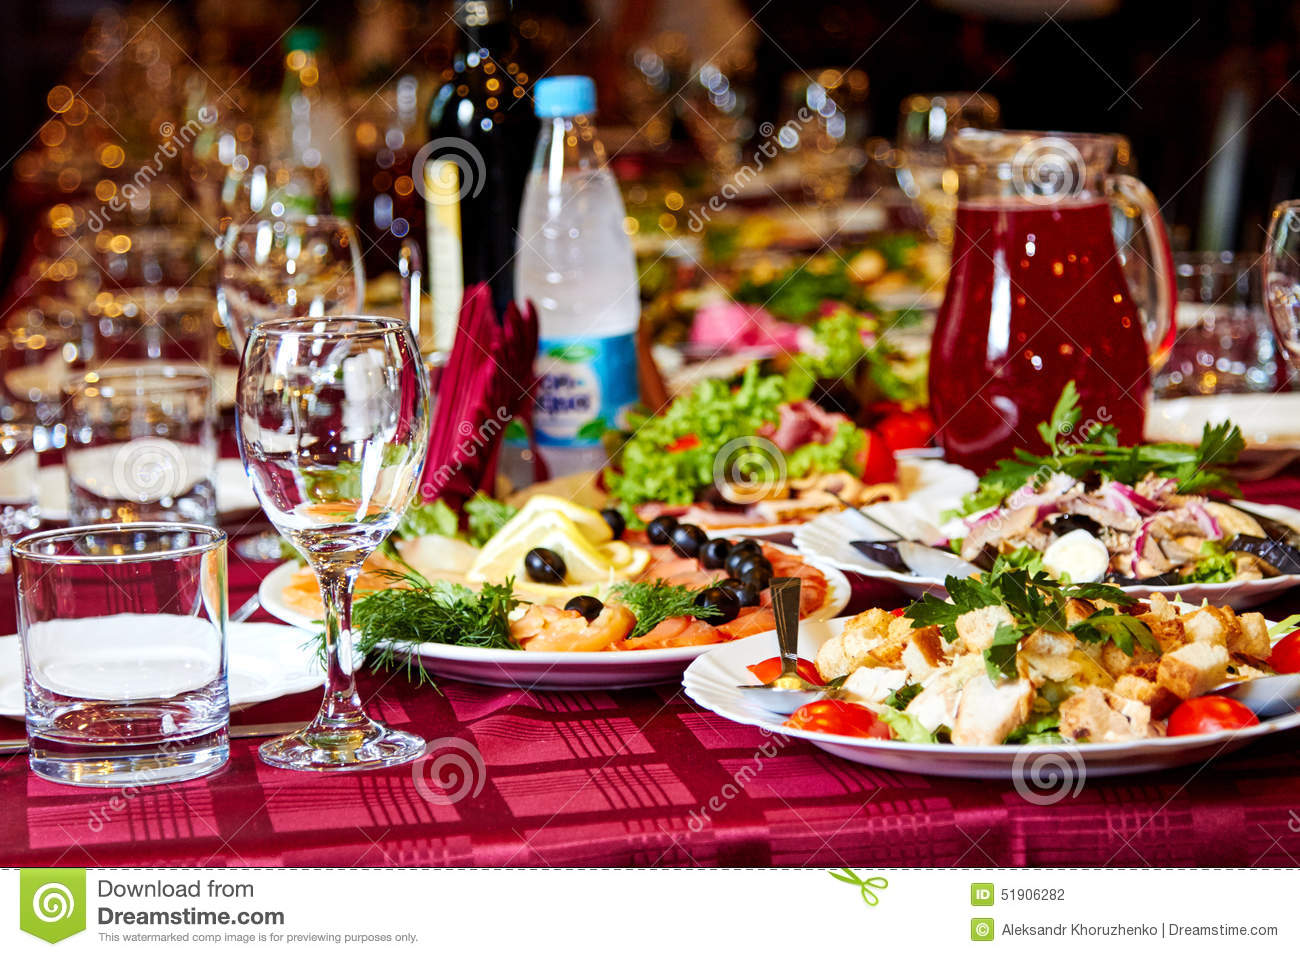 drinks party table alcohol festa alcool festive alkohol tavola alimento faccia vodka bevande natale drinking indian its drinkar tabellen mat